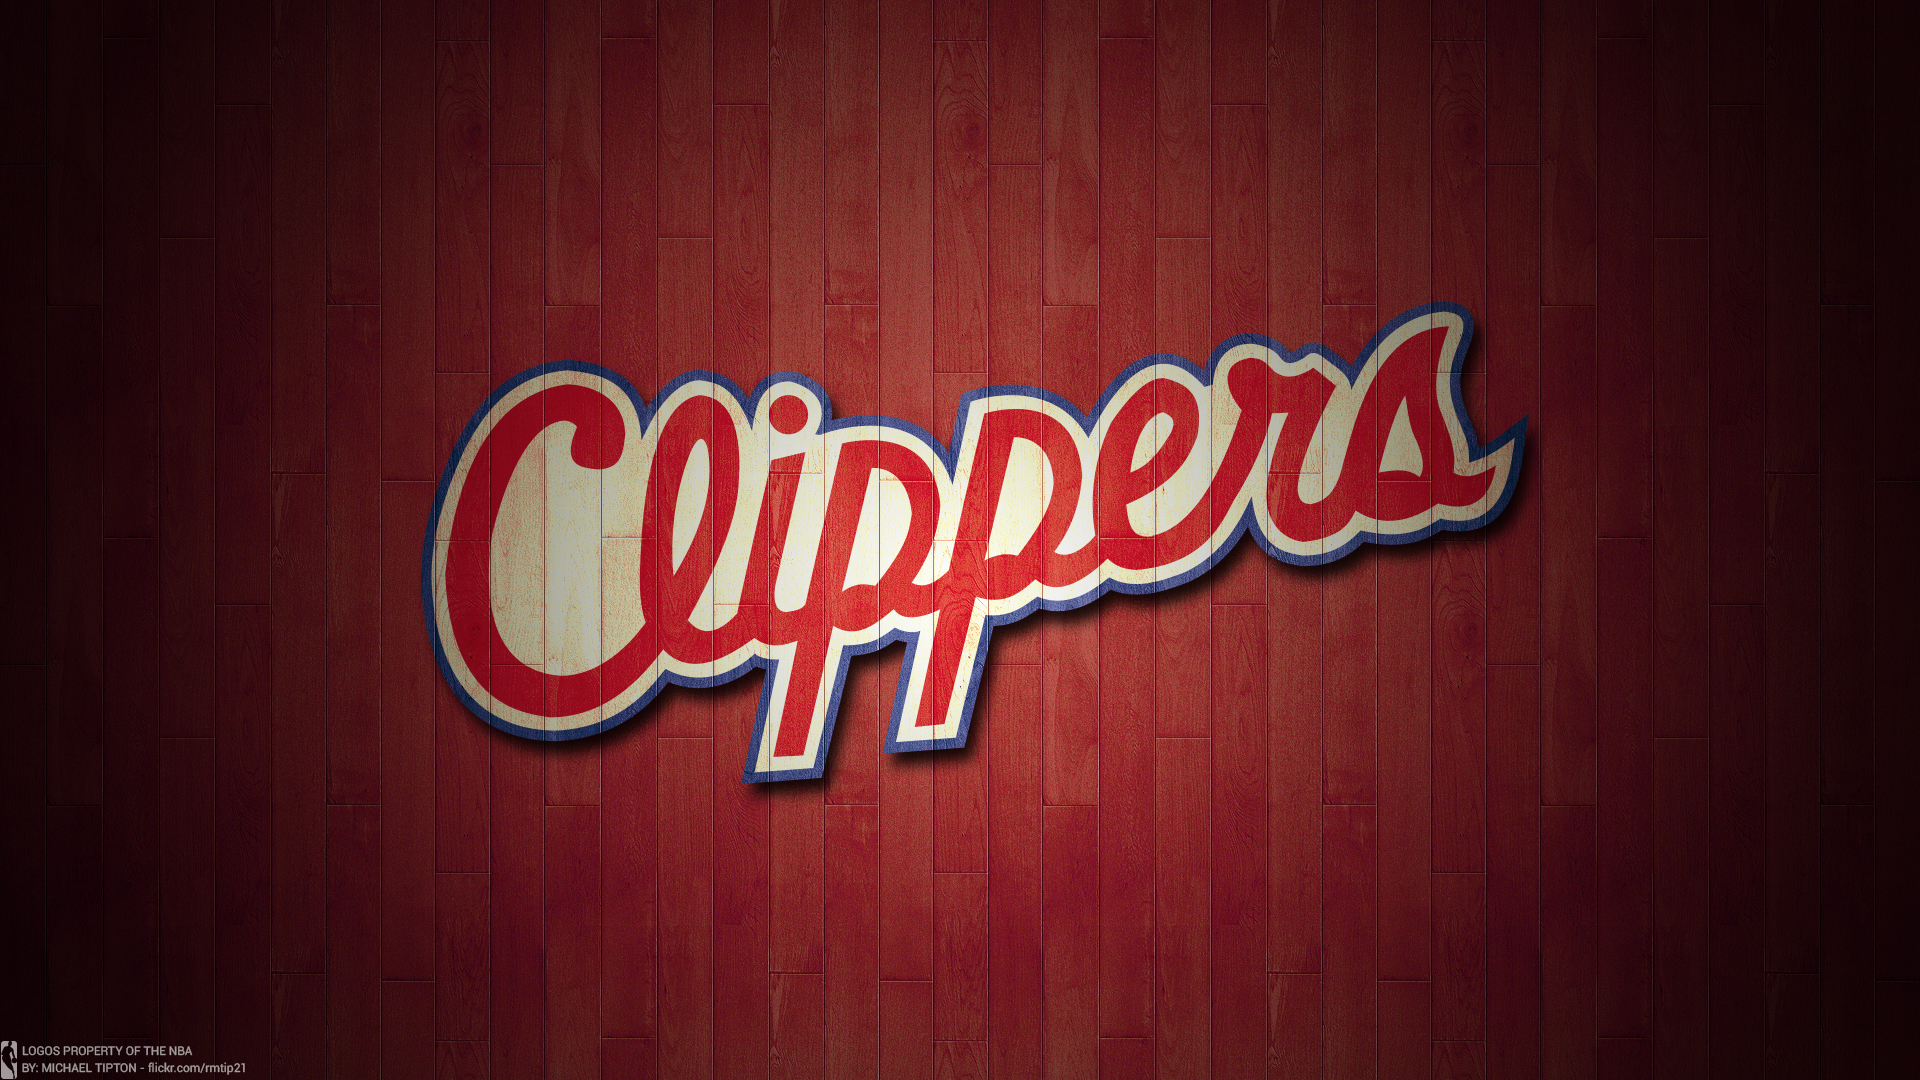 1920x1080 Clippers Desktop Images